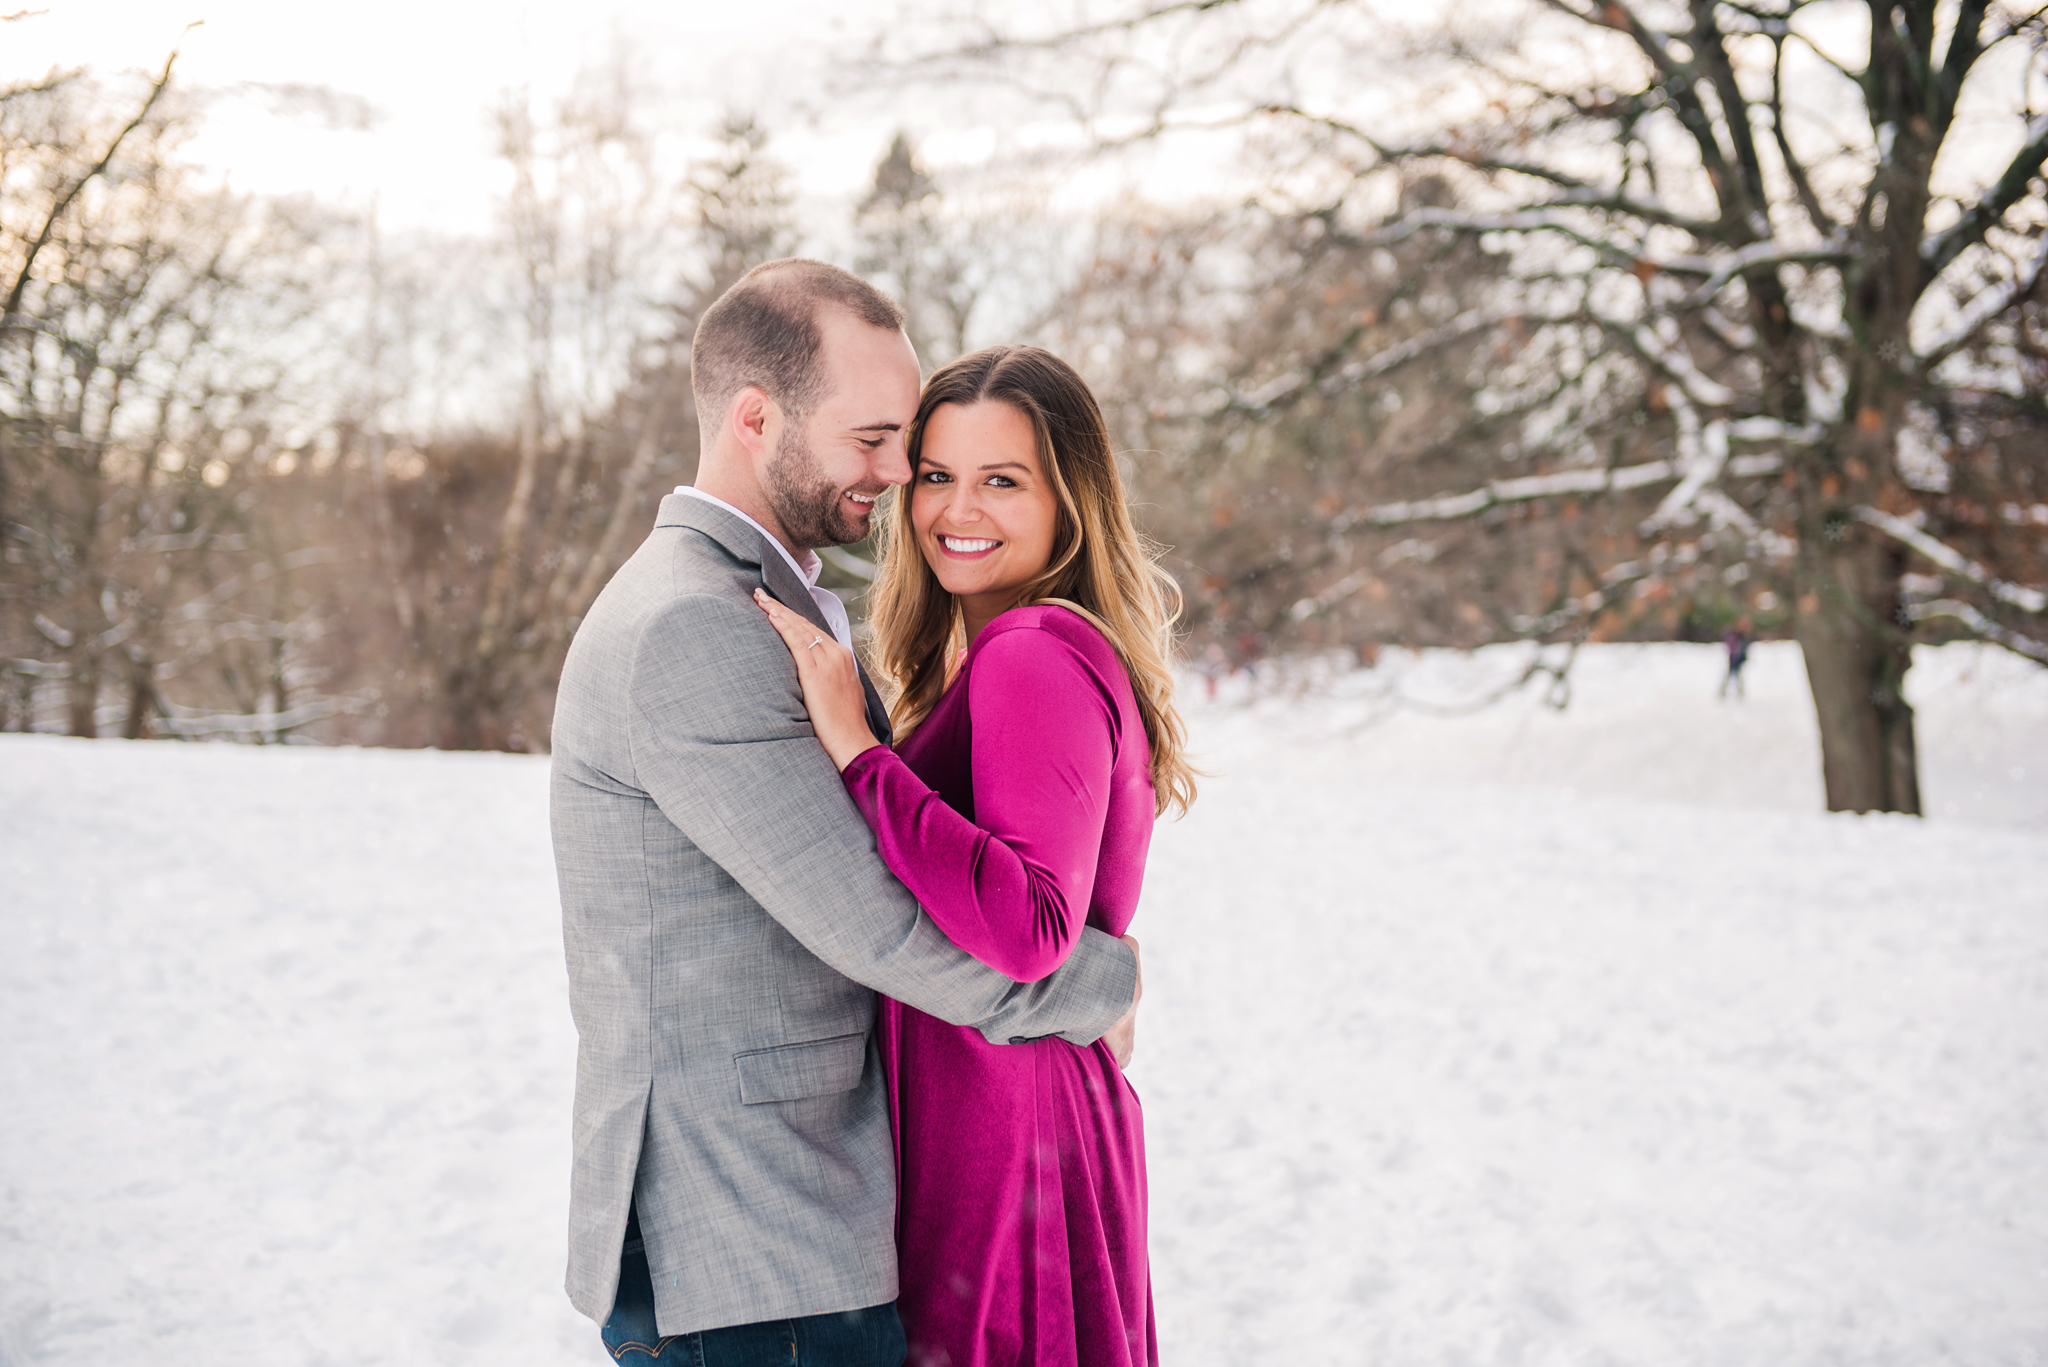 Webster_Park_Engagement_Session_Rochester_NY_photographer_DSC_6333.jpg